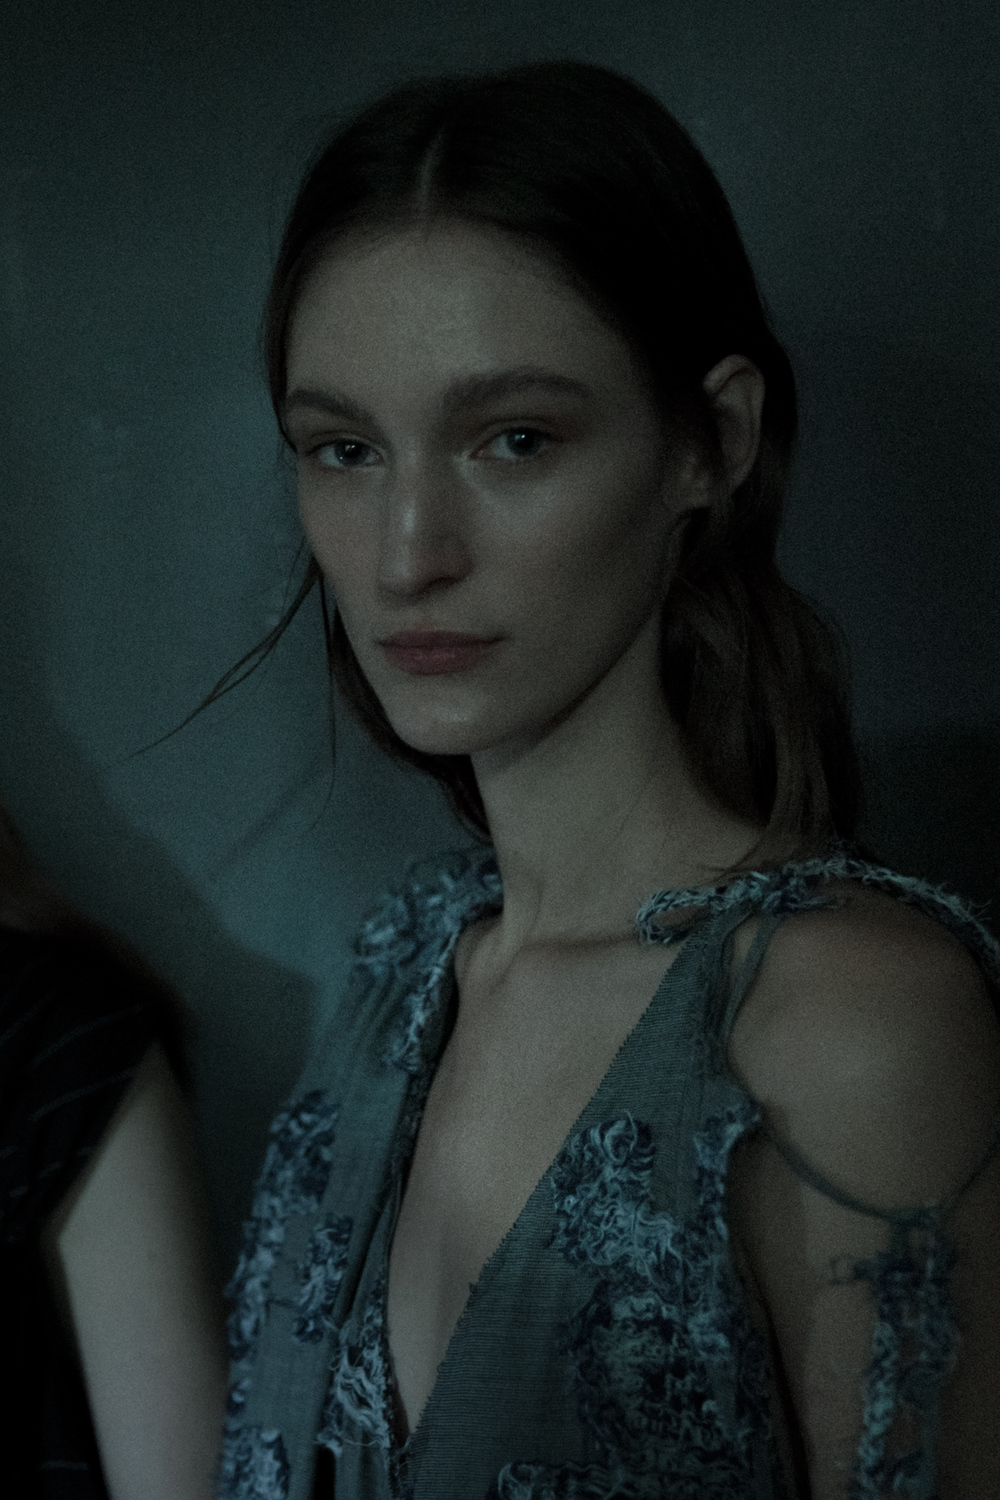 damir doma spring/summer 2016 photography by marco giuliano